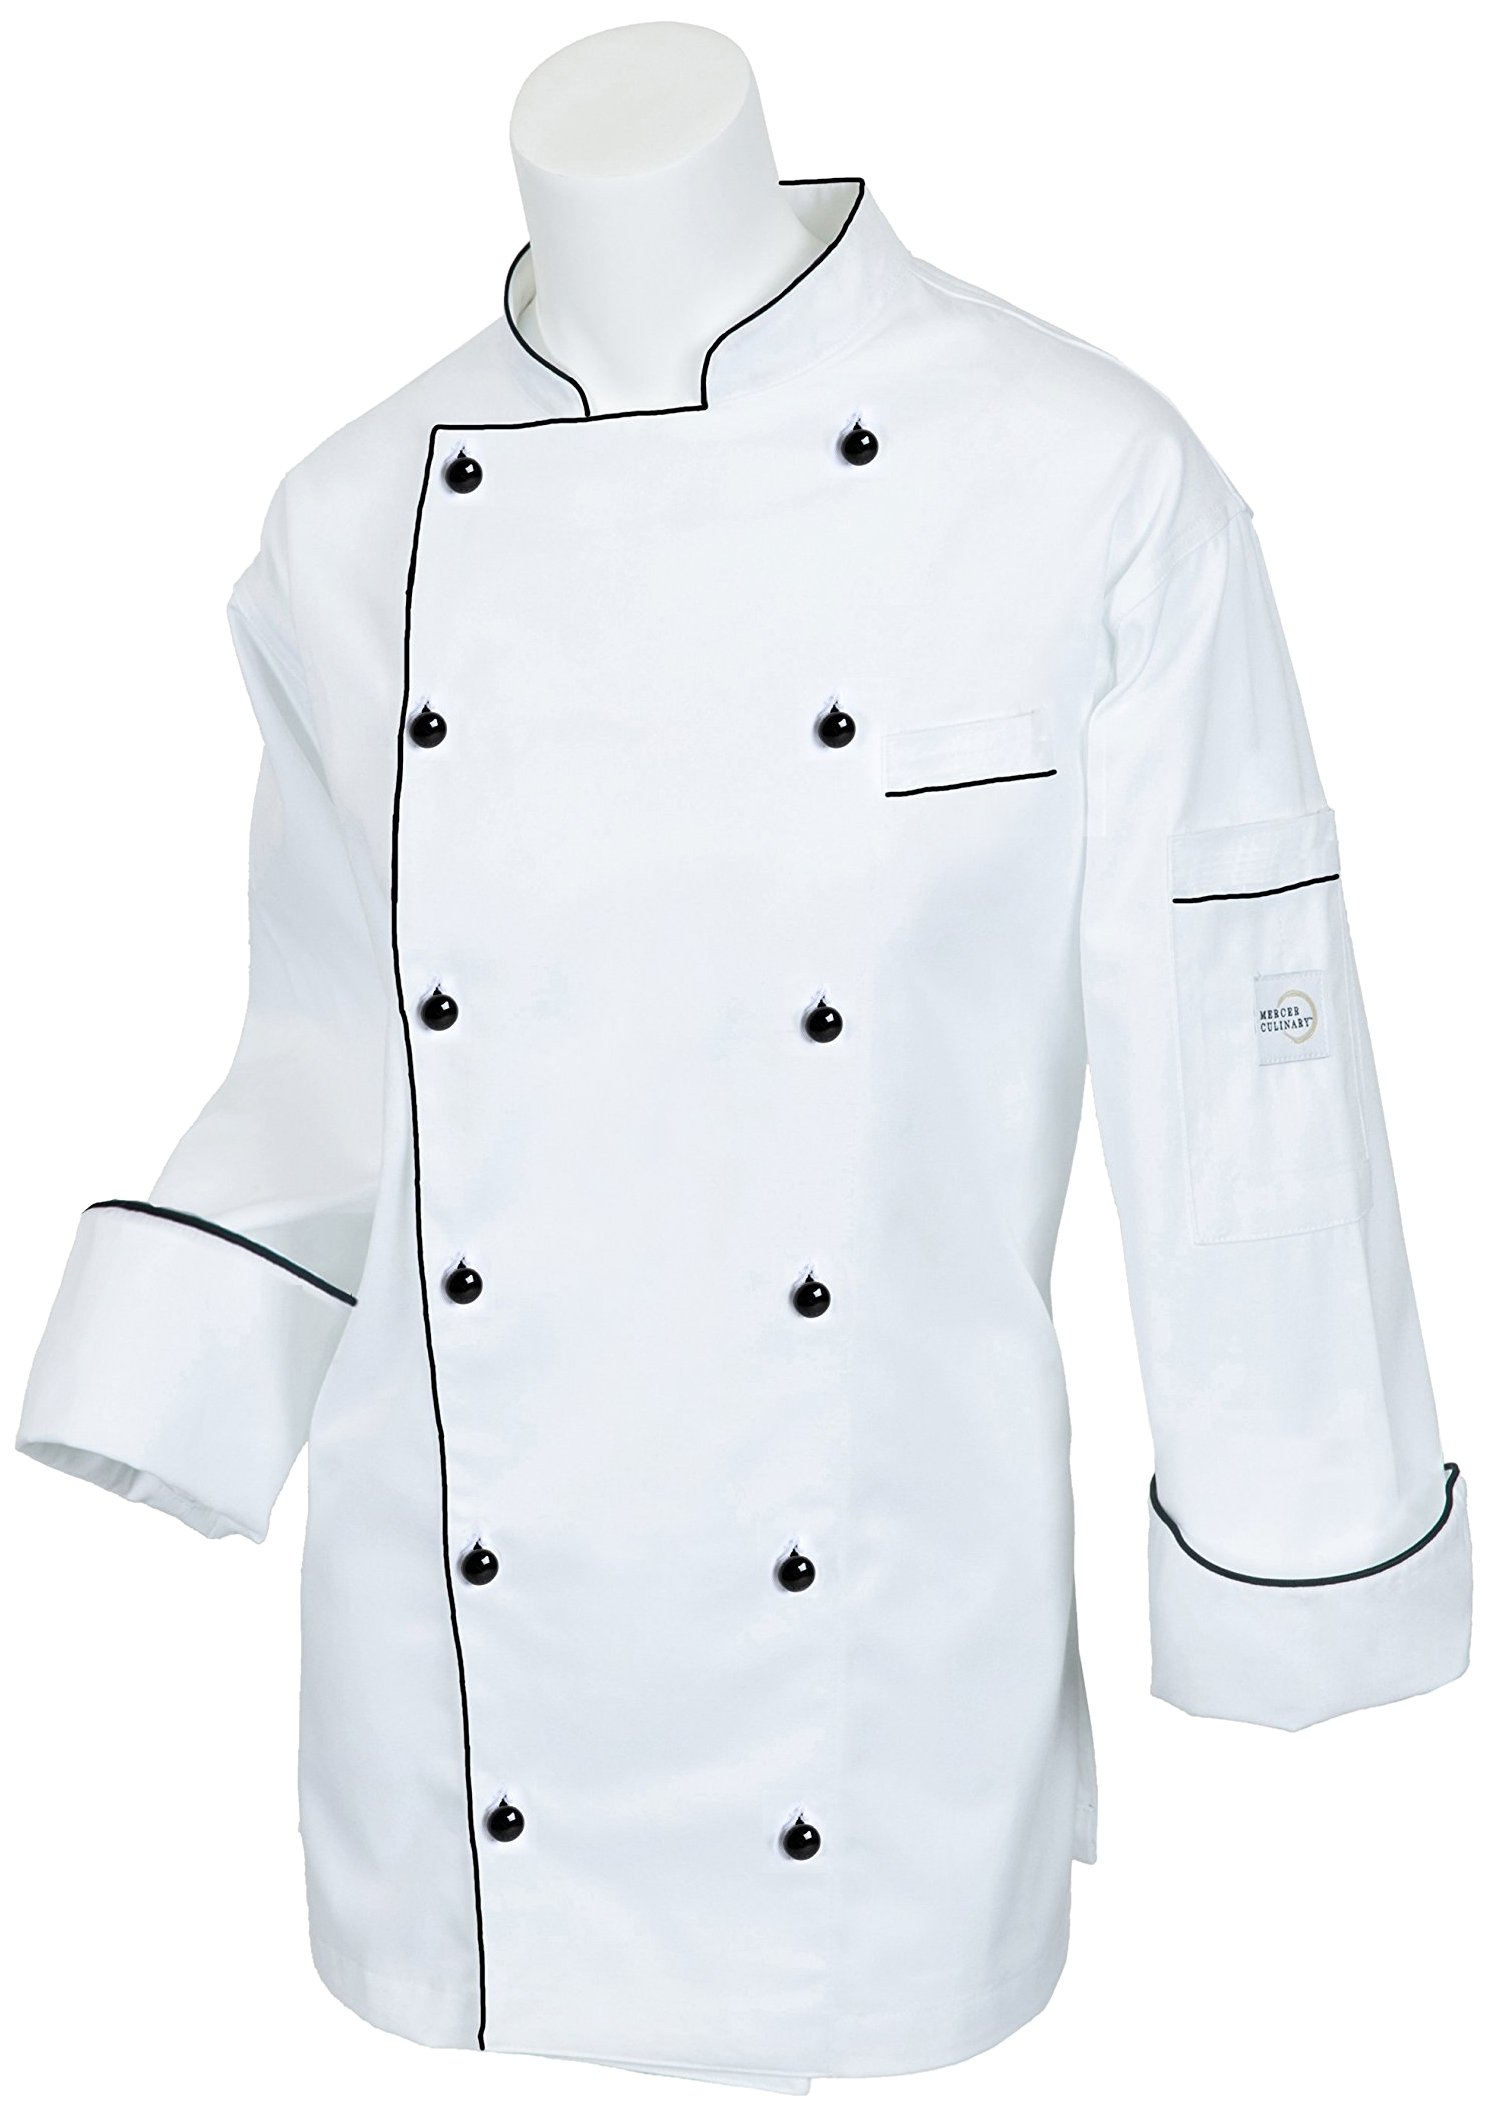 Mercer Culinary M62095WBXS Renaissance Women's Traditional Neck Jacket with Black Piping, X-Small by Mercer Culinary